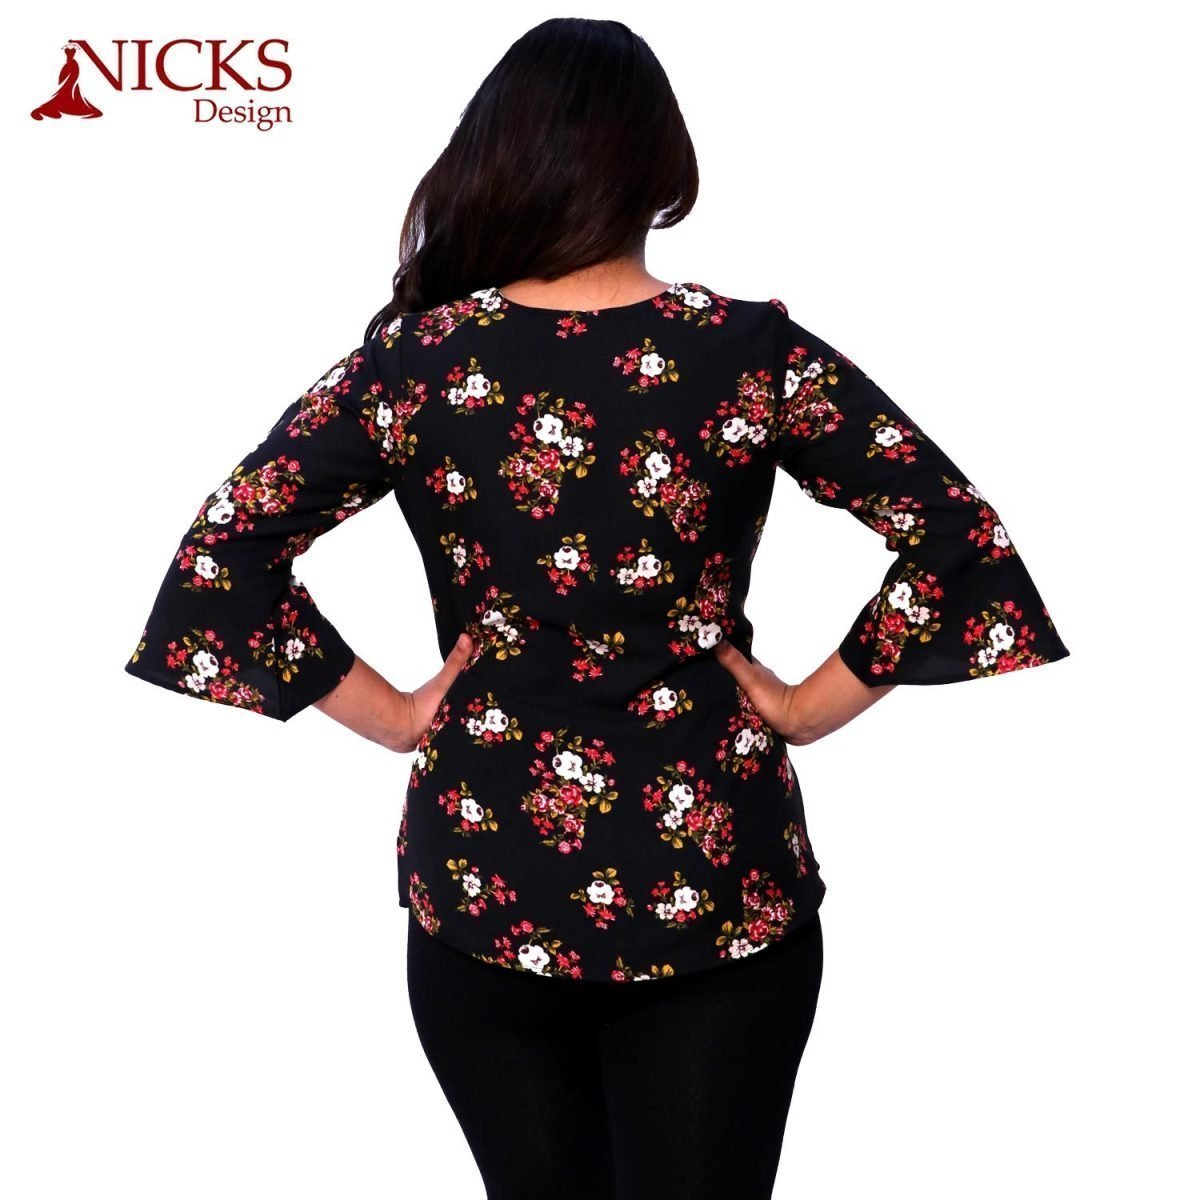 Floral Ruffle Top for women